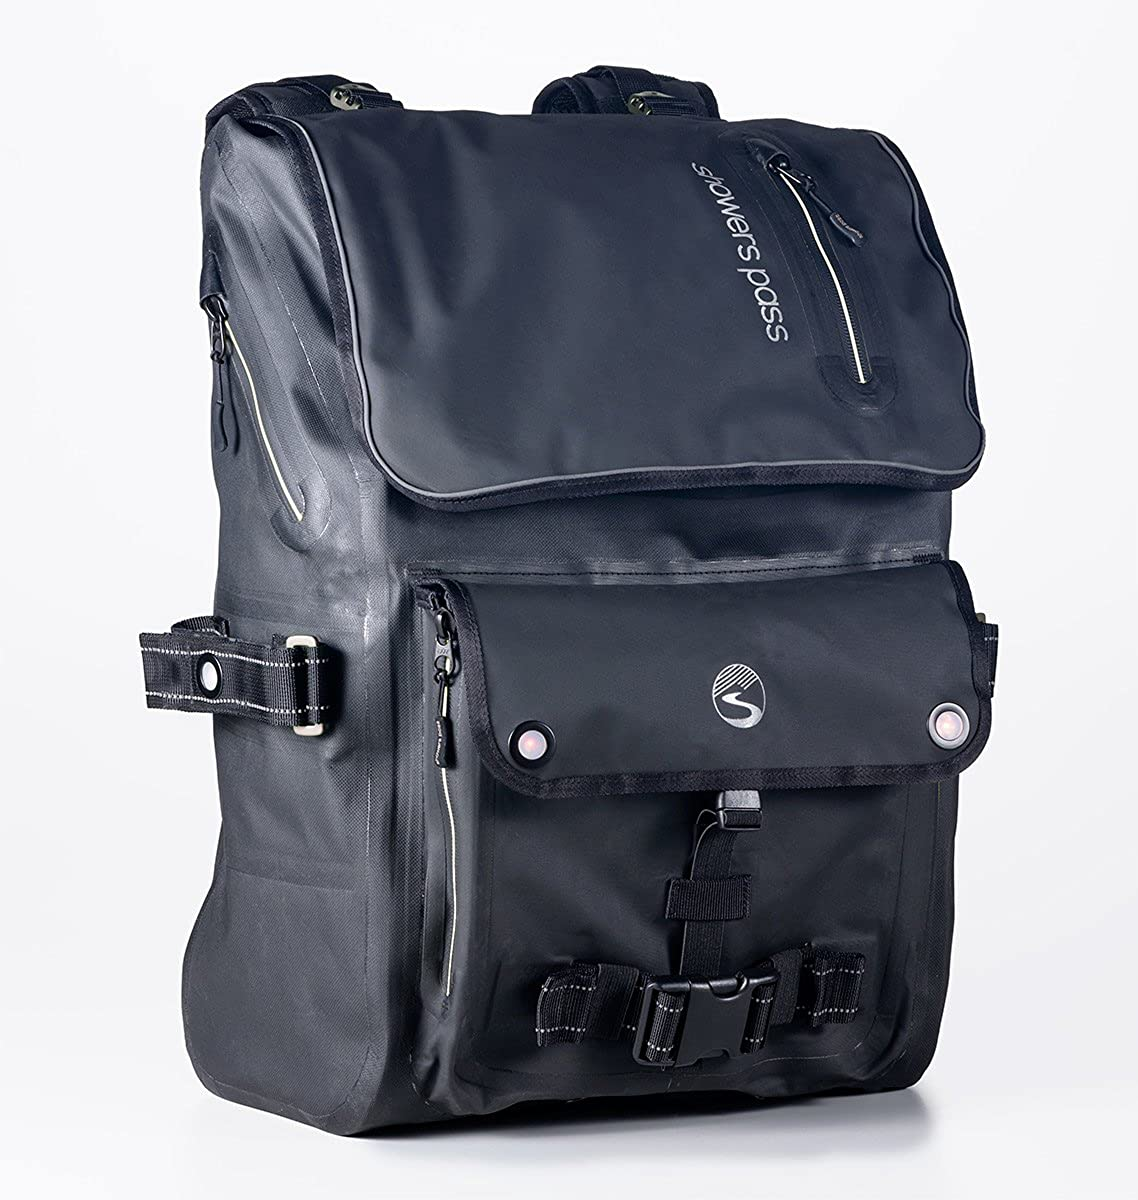 Showers Pass Transit wp Backpack